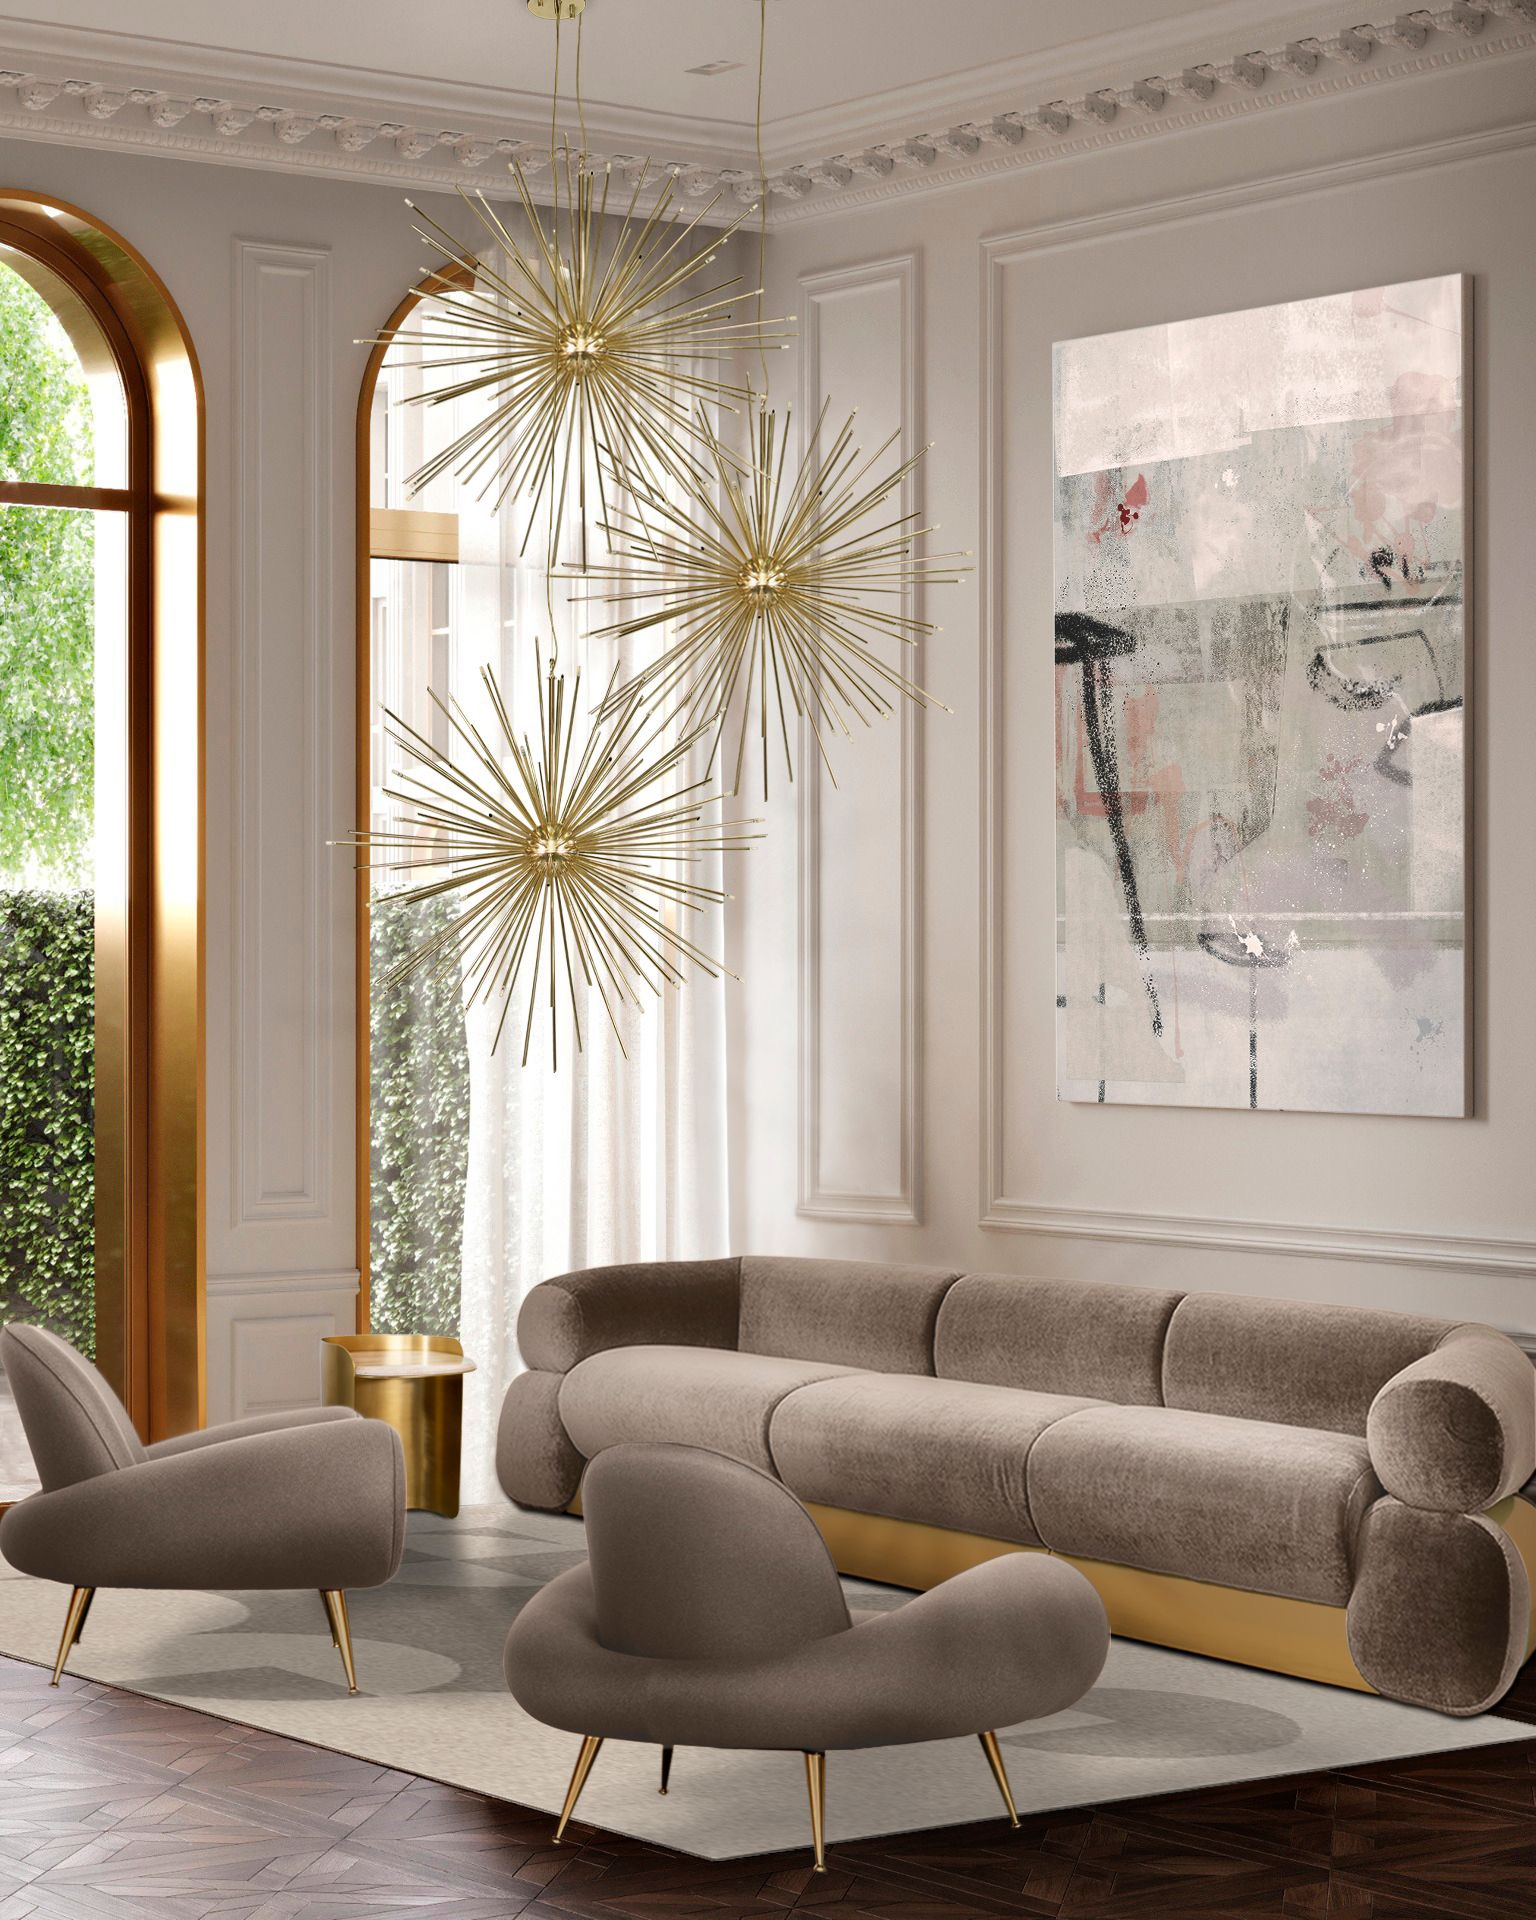 Luxury Home Furniture Ideas To Revamp Your Modern Home   Luxury Home Furniture Ideas To Revamp Your Modern Home 2